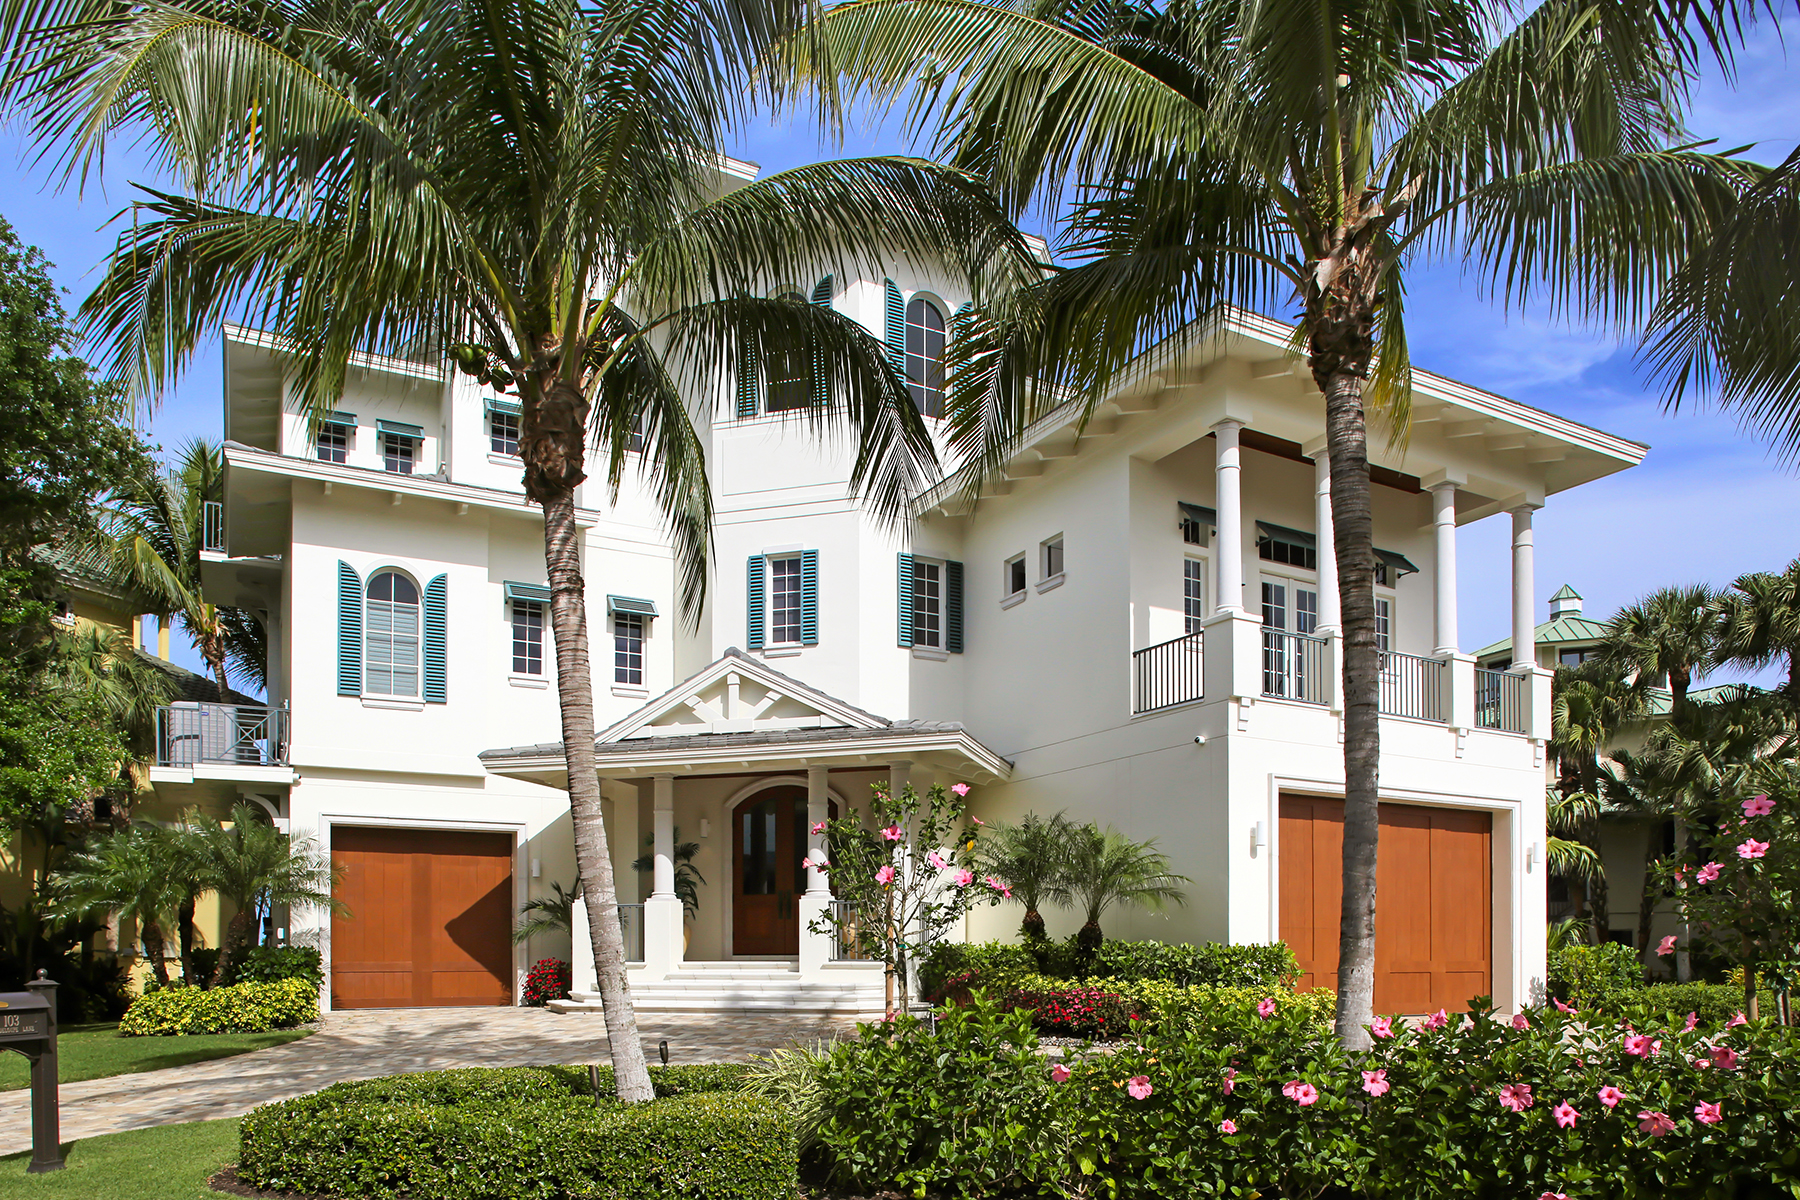 Single Family Homes for Active at BAREFOOT BEACH 103 Guadeloupe Lane Bonita Springs, Florida 34134 United States